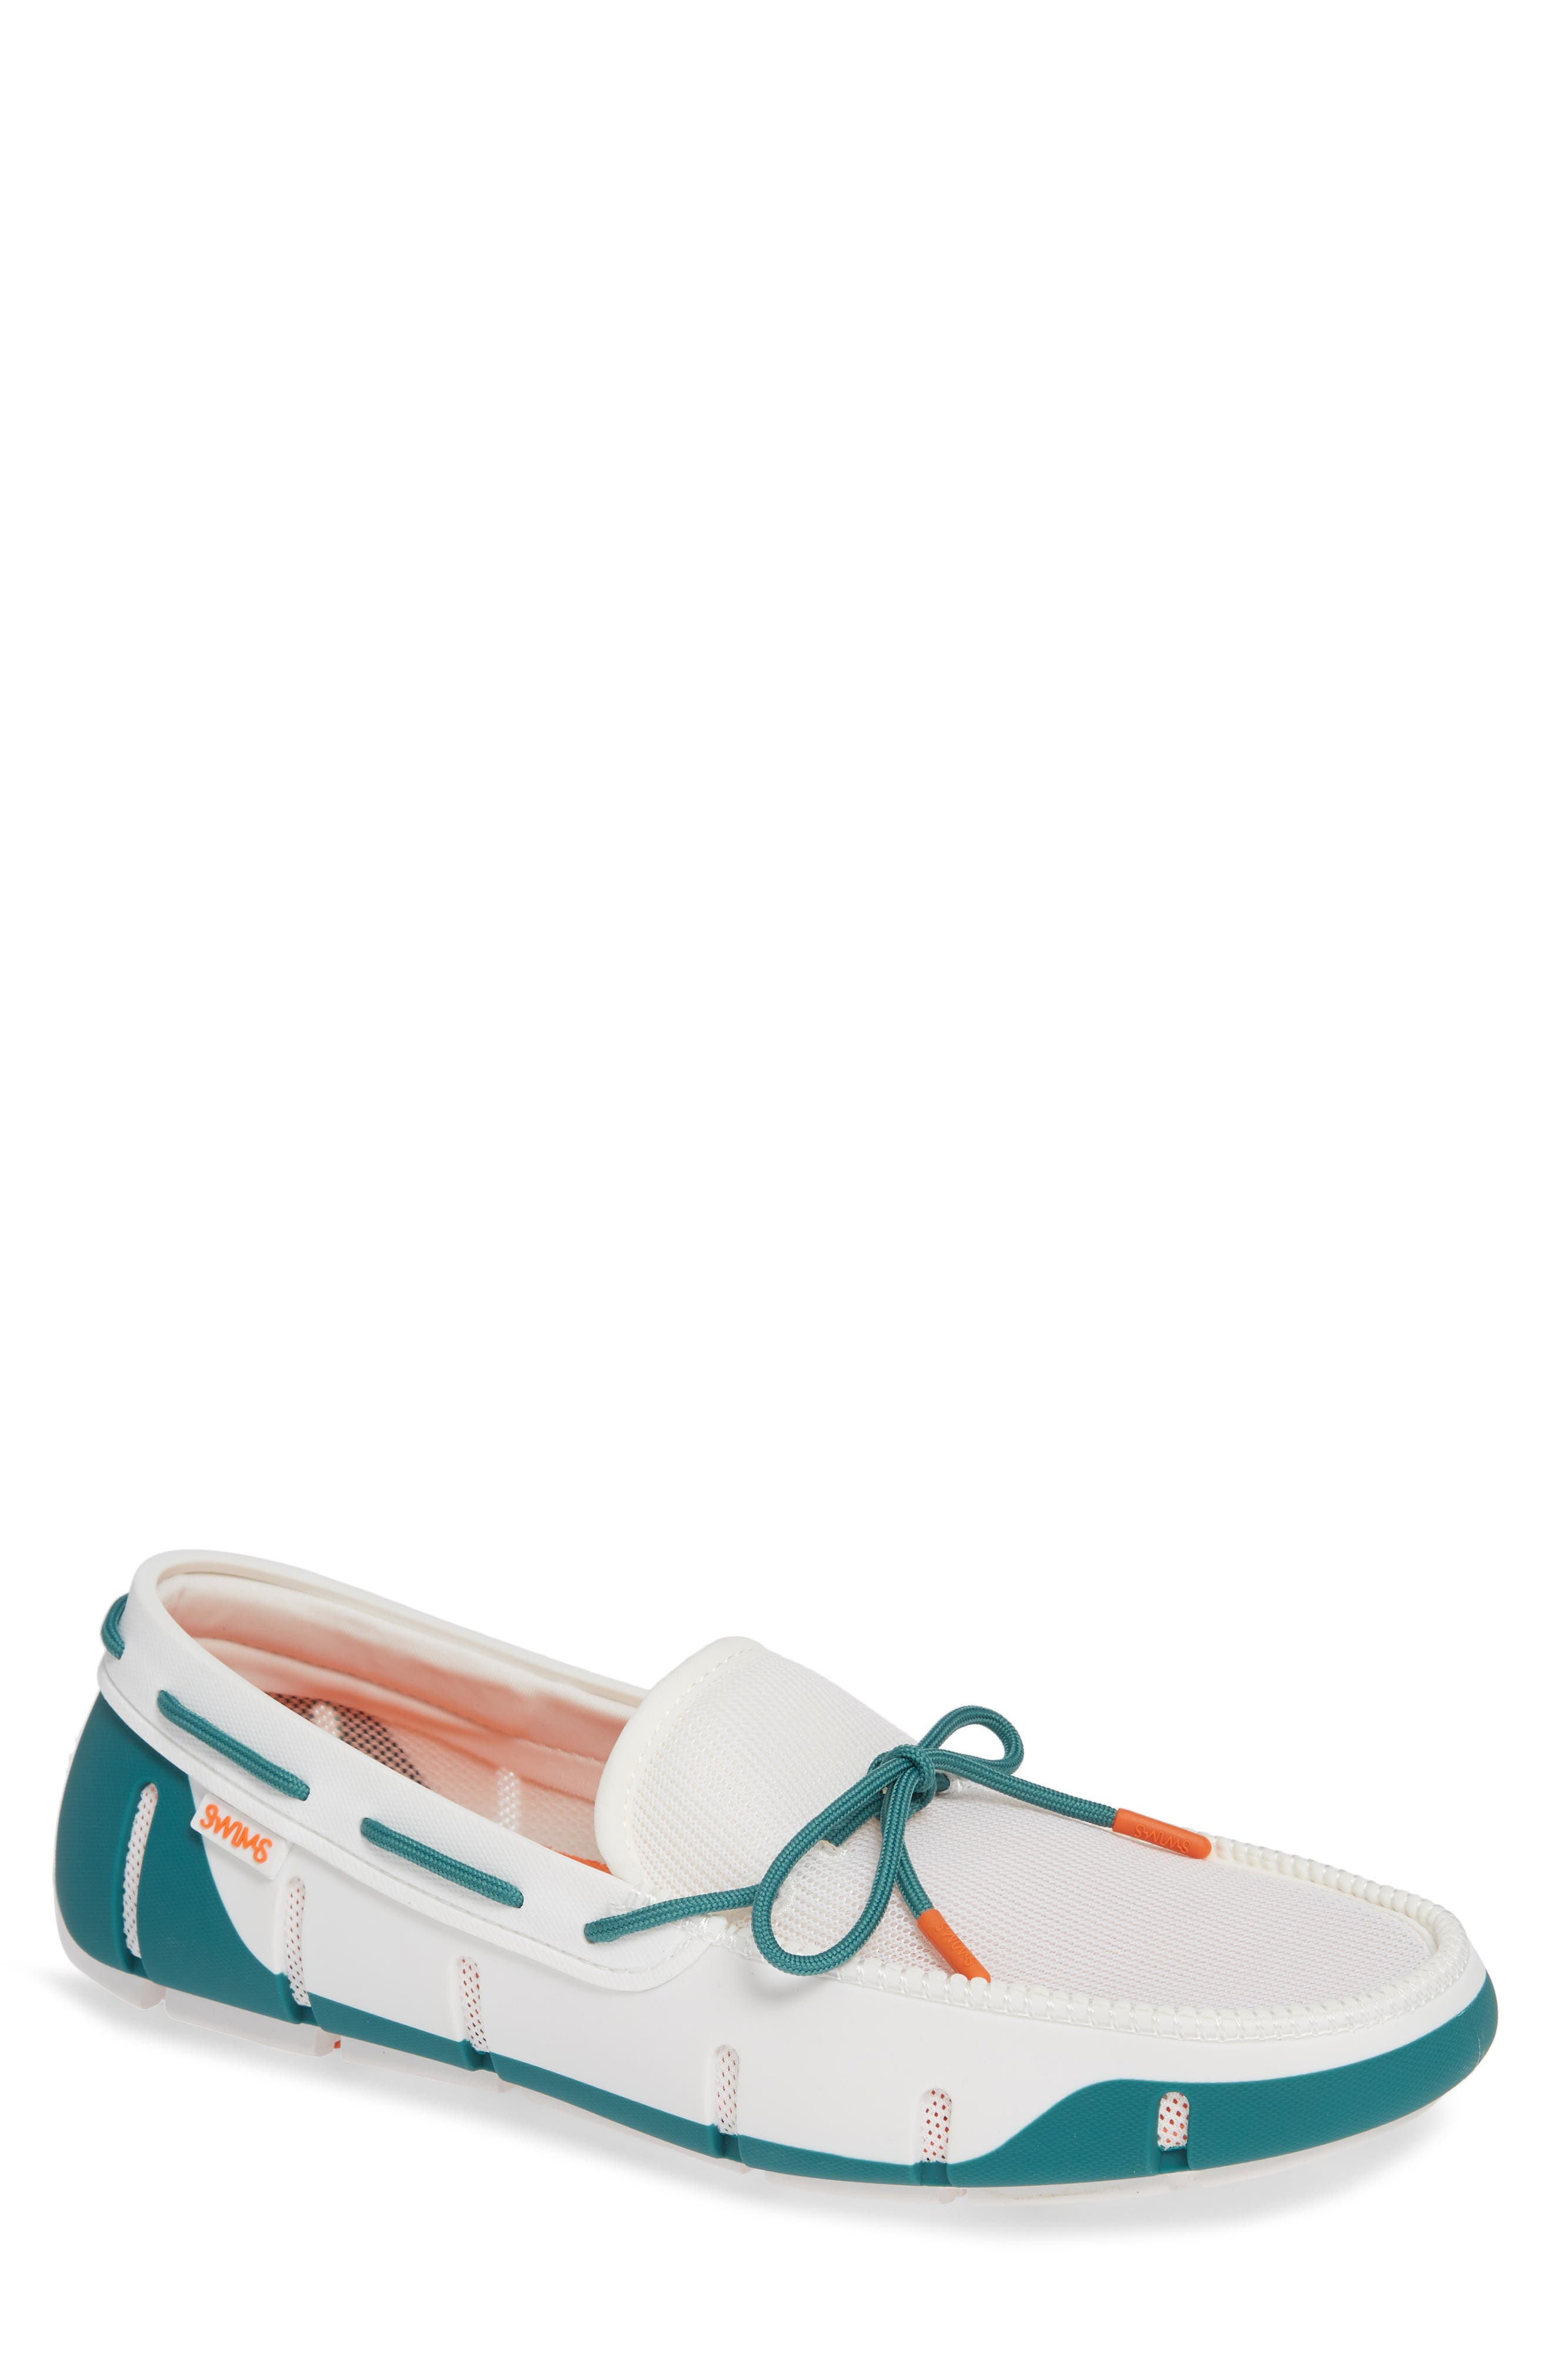 SWIMS, Stride Lace Loafer, Main thumbnail 1, color, 100